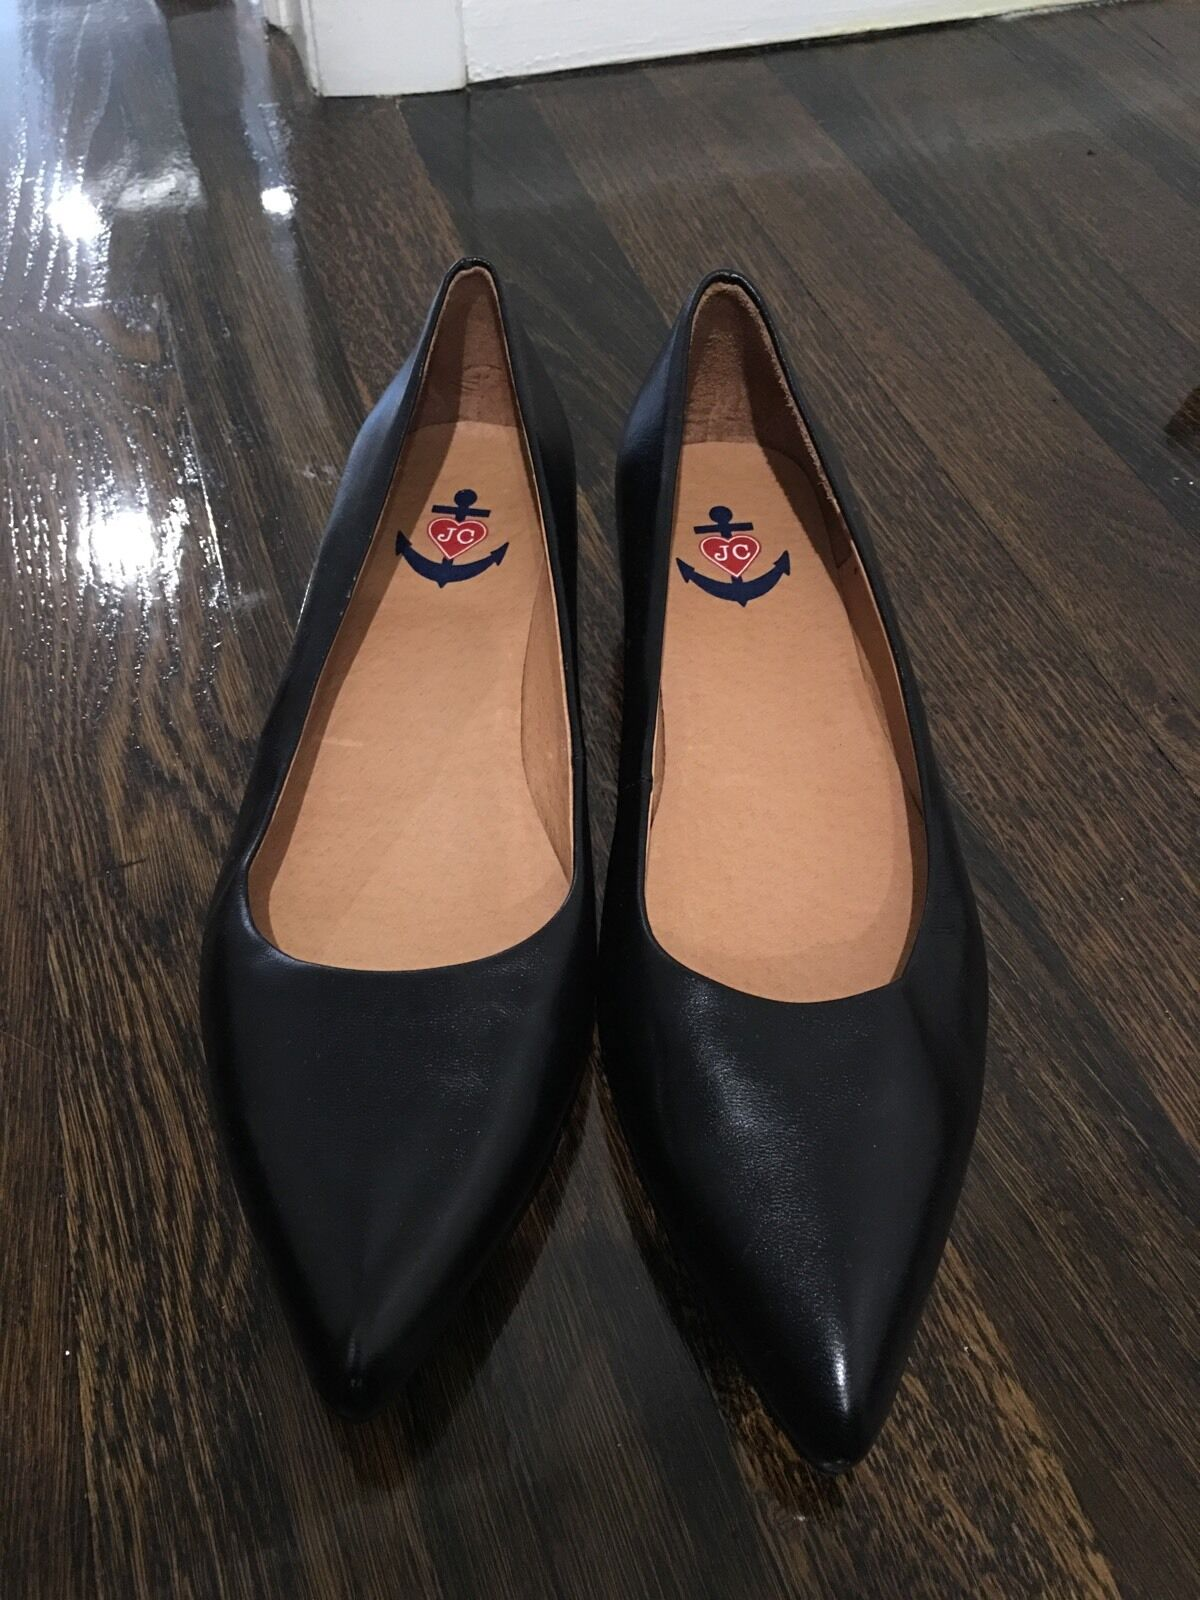 JC Pointy Size 8.5  Black Leather shoes With Small Heel